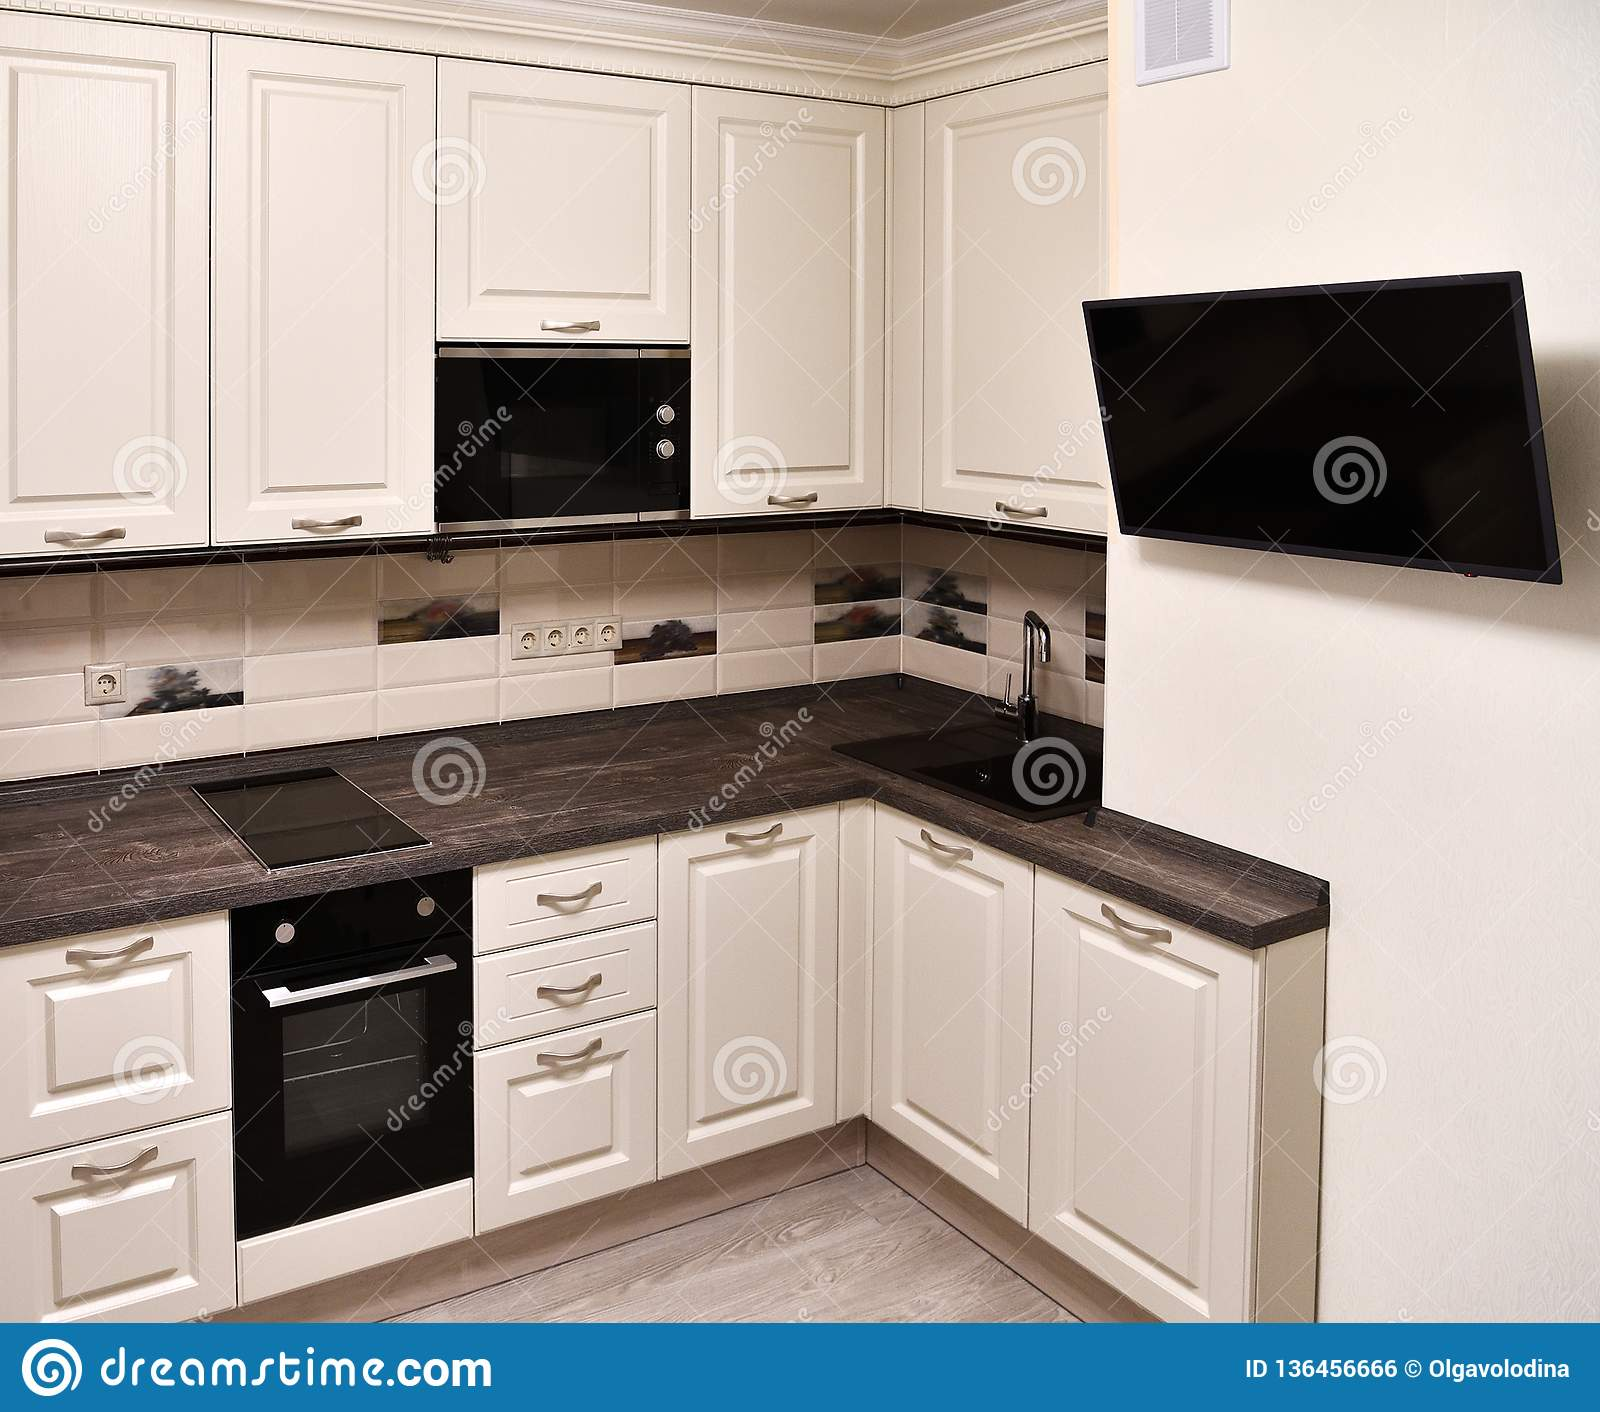 Fragment Of Beige Kitchen And Tv On The Wall Stock Photo Image Of Cabinet Sink 136456666